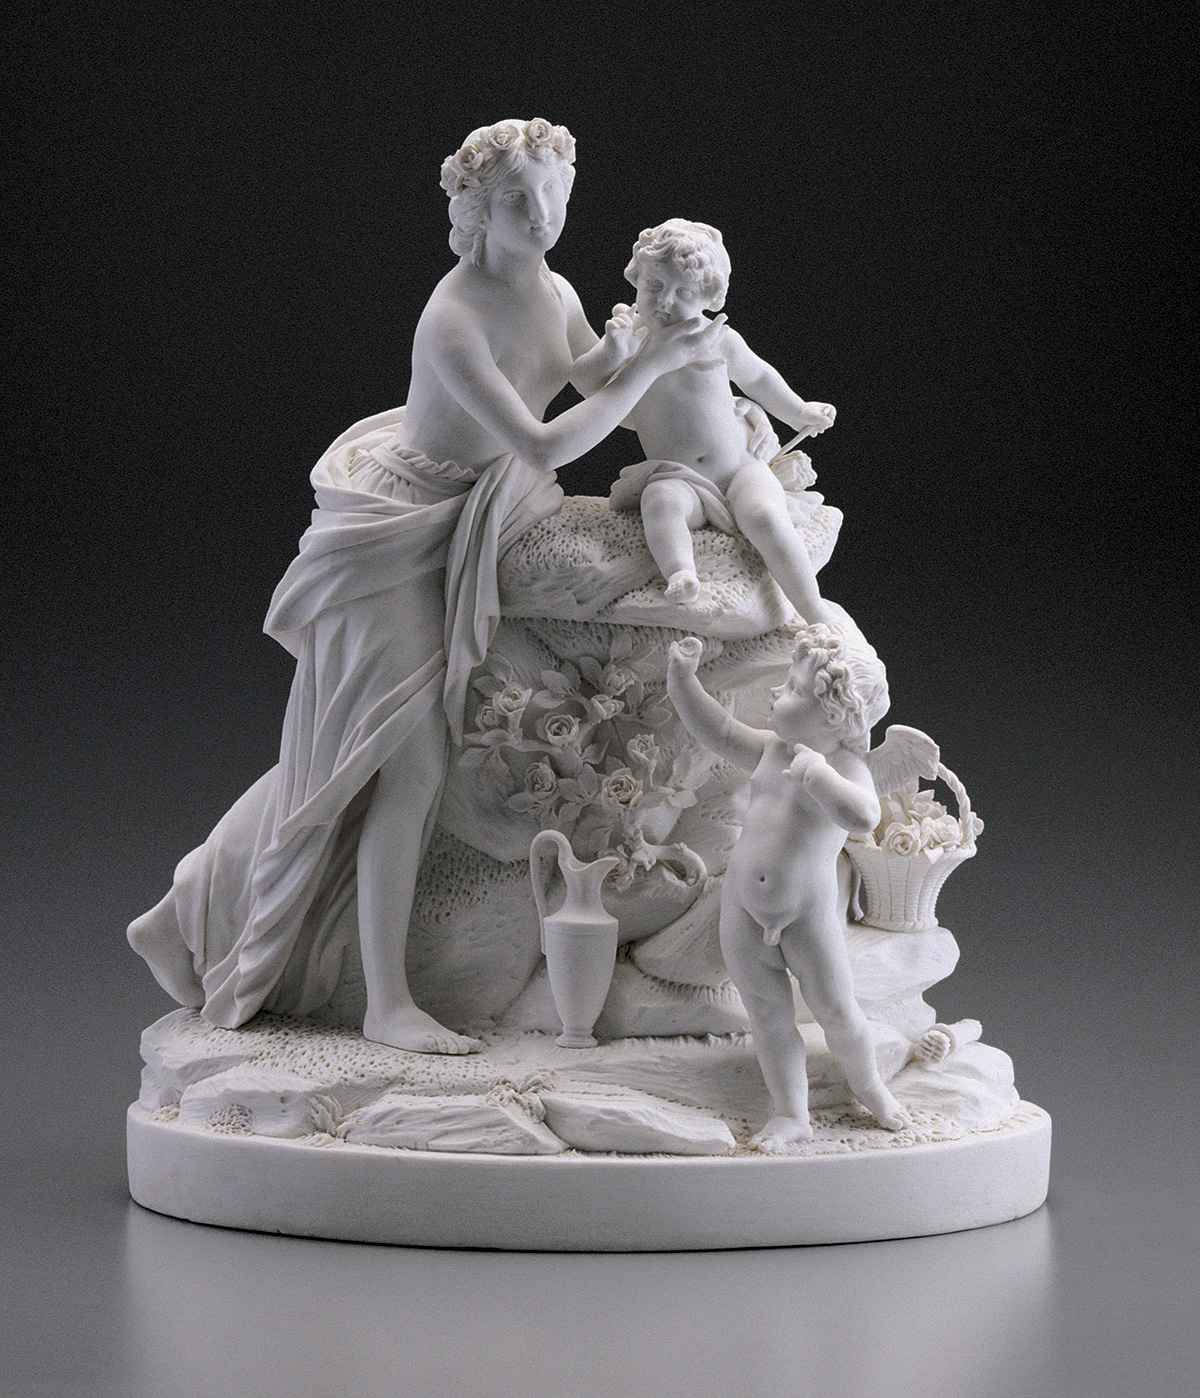 The smooth surfaces of unglazed biscuit porcelain mimic the purity of classical sculpture and made it a fashionable choice for table ornaments in the second half of the eighteenth century. (MVLA)